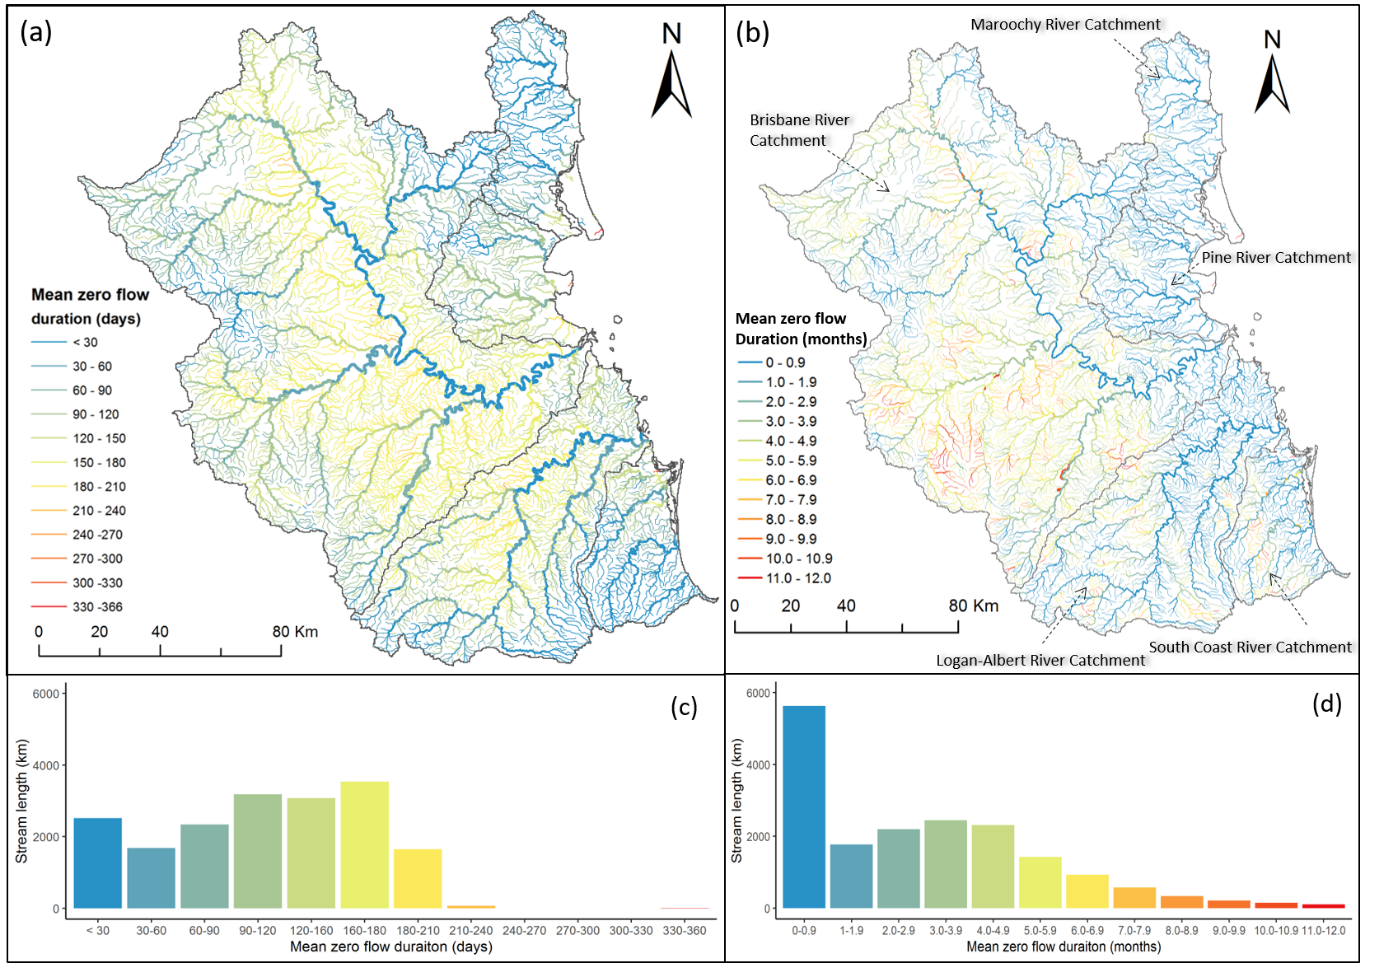 Figure 2. Comparison of the spatial pattern of average annual flow intermittency in South-east Queensland derived from (a) daily flow simulations from the AWRA-L model and (b) monthly flow simulations from the WaterDyn model. Stream segments in both figures are coloured using the same frame but different units. Line thicknesses show the stream orders. Frequency distributions of variations in the total stream length for each of 12 flow intermittency classes are also shown for (c) the AWRA-L model and (d) the WaterDyn model.